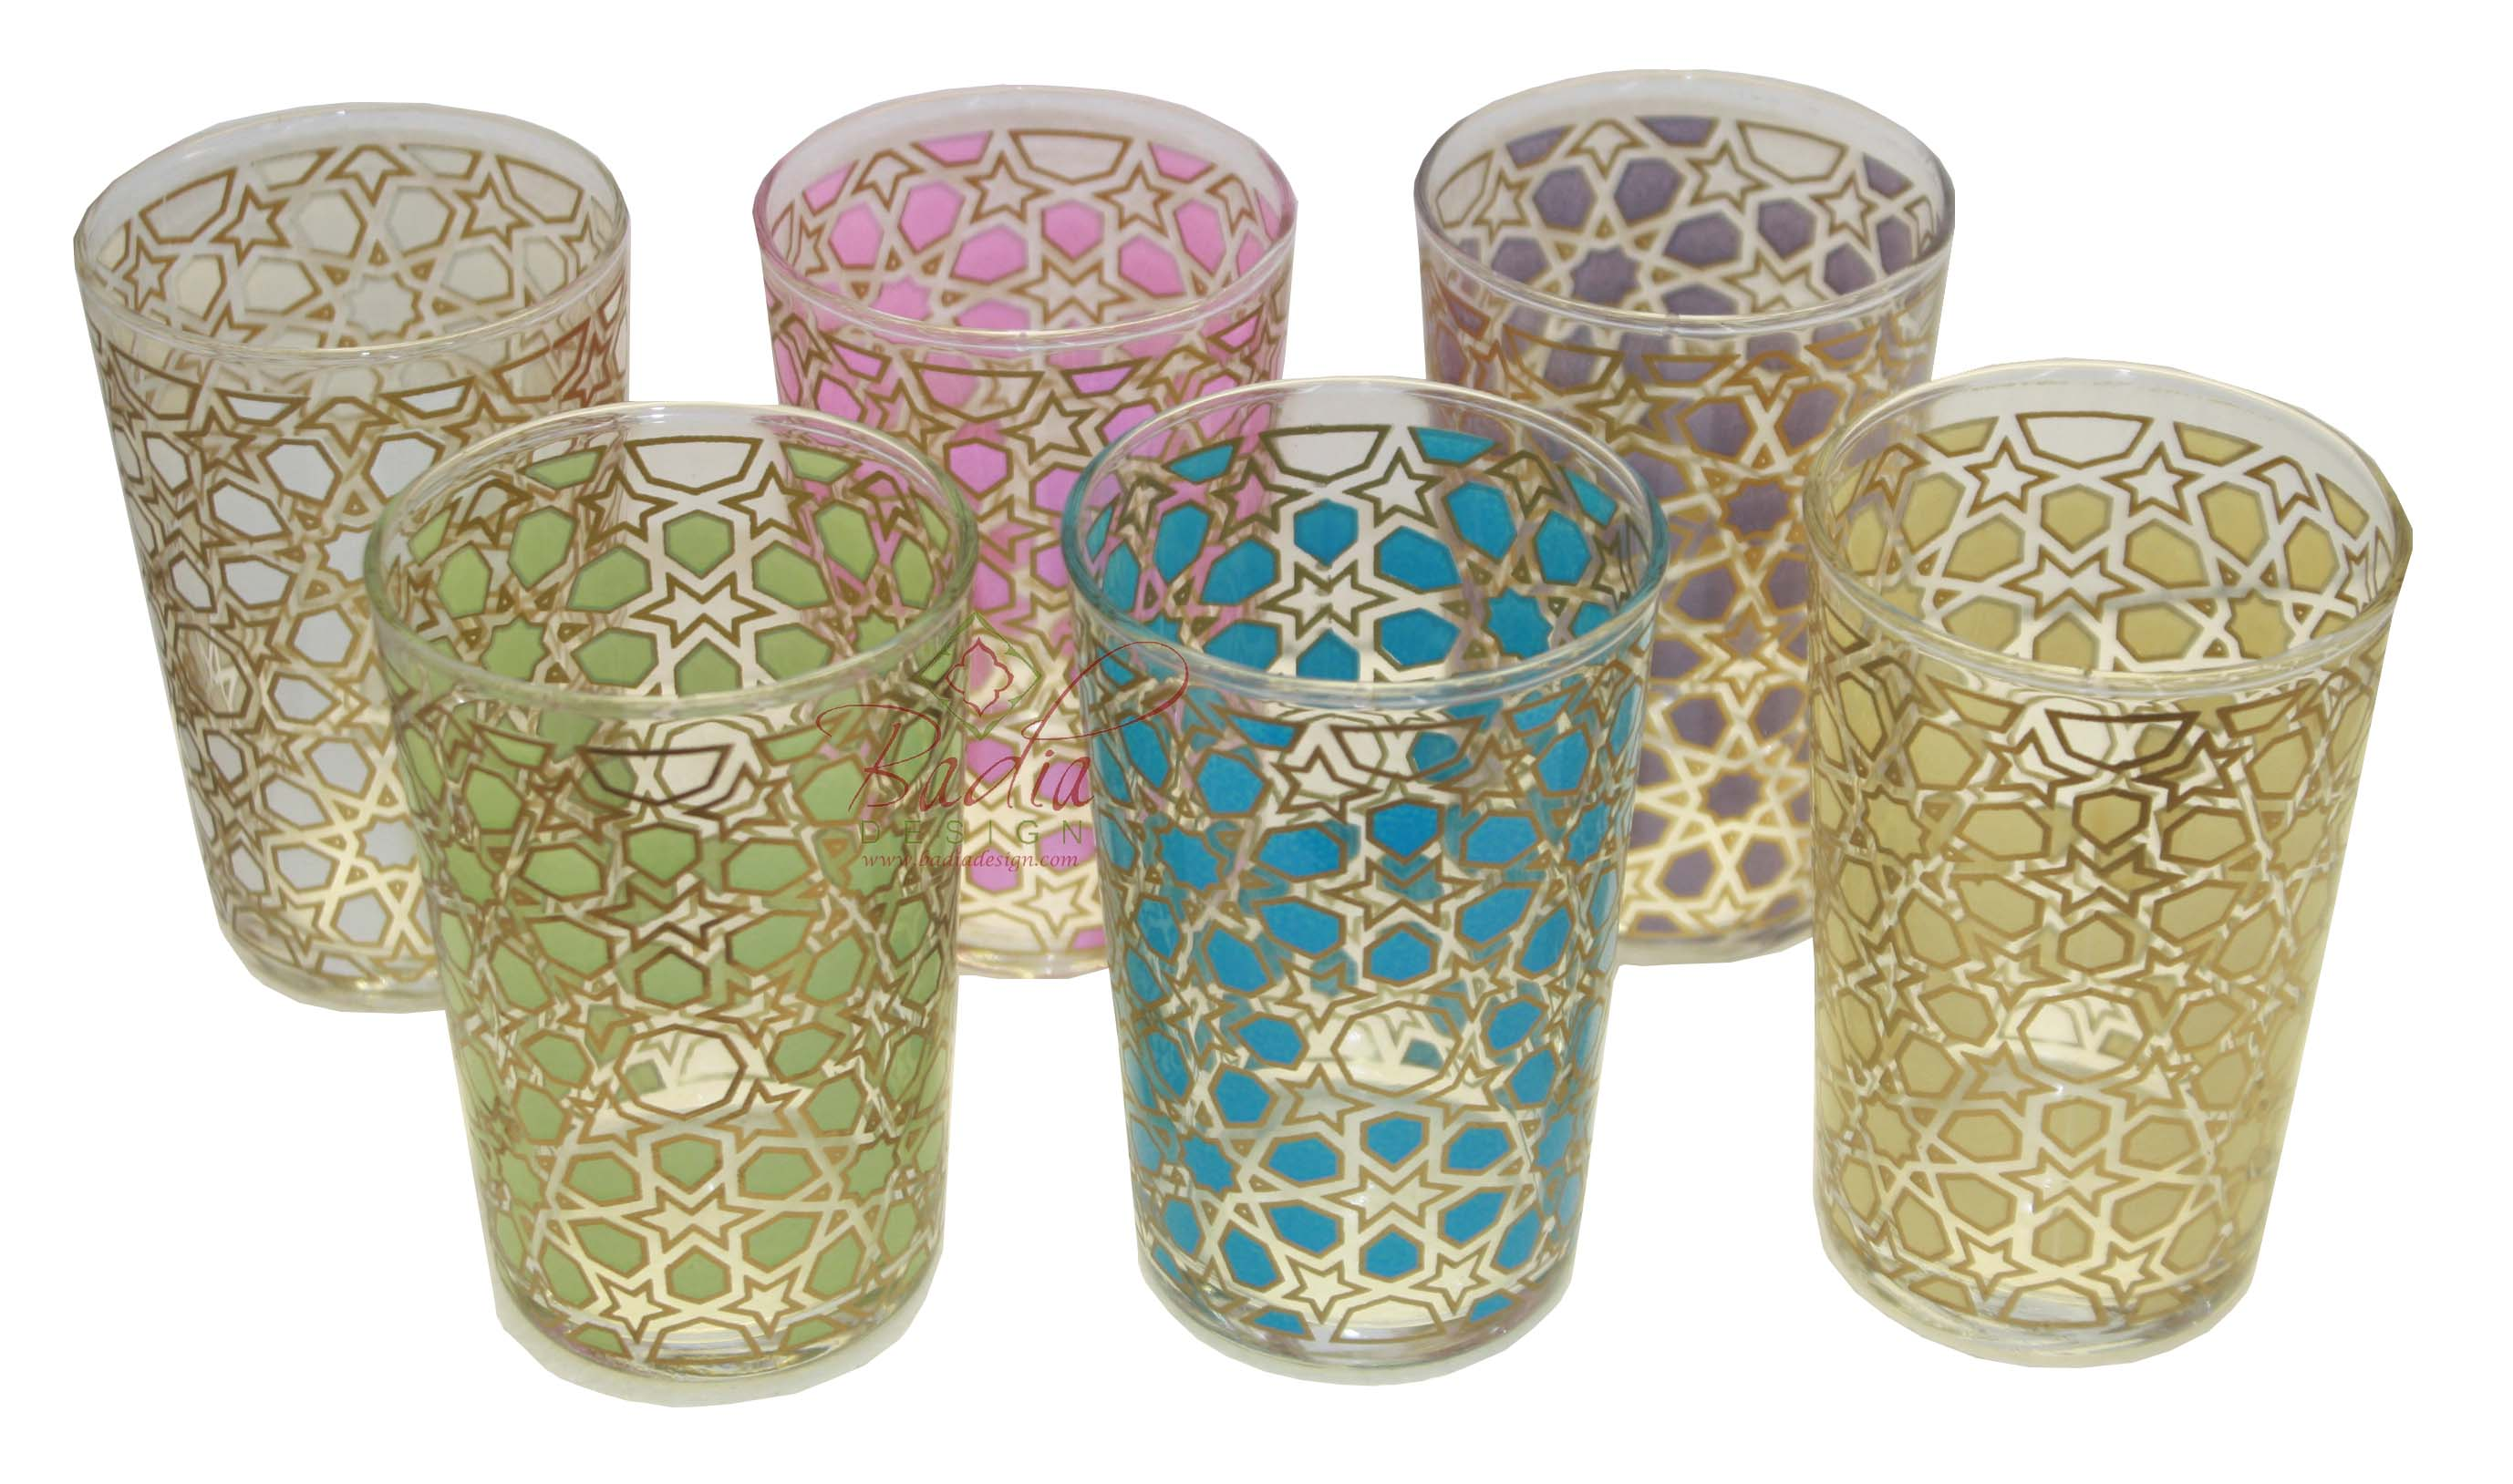 moroccan-multi-color-water-or-beverage-glasses-tg20ac-444.jpg